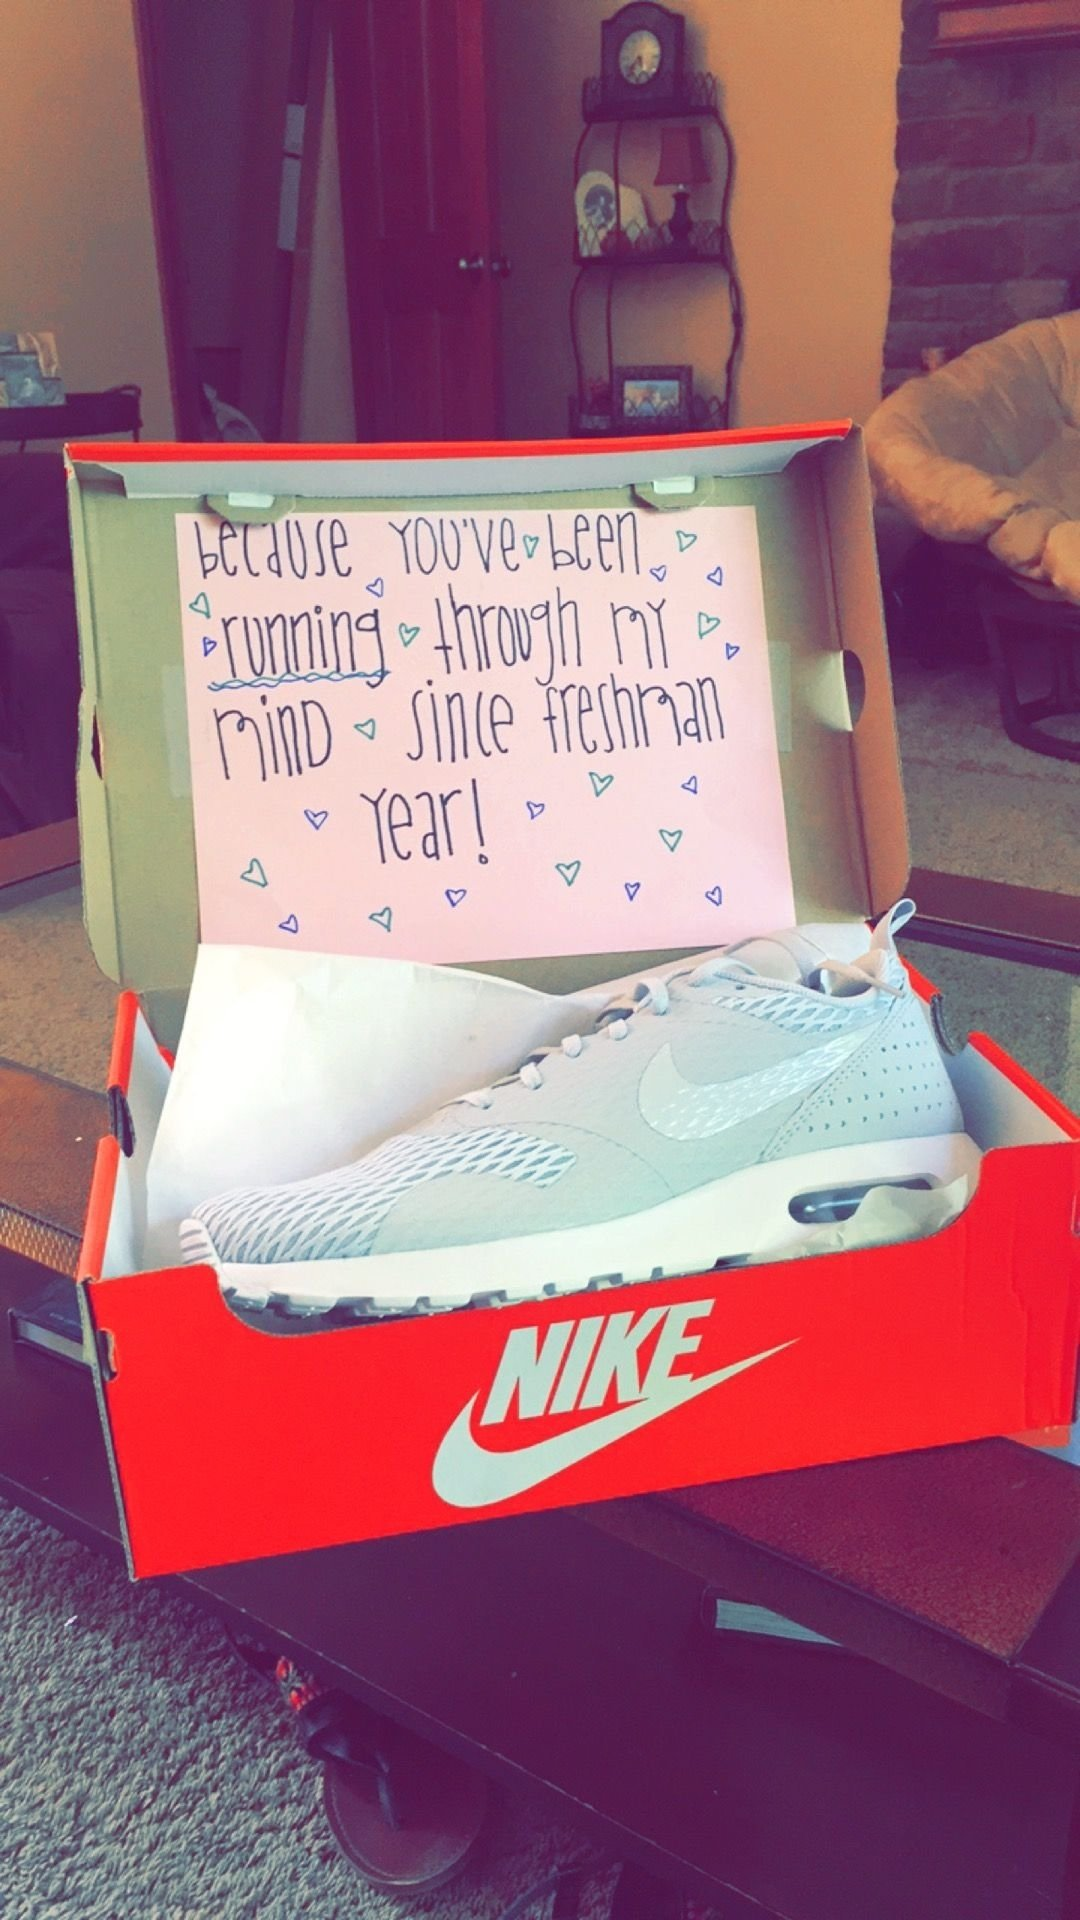 10 Lovable Cute Birthday Ideas For Girlfriend Christmas Presents Top Five Gift Teenager